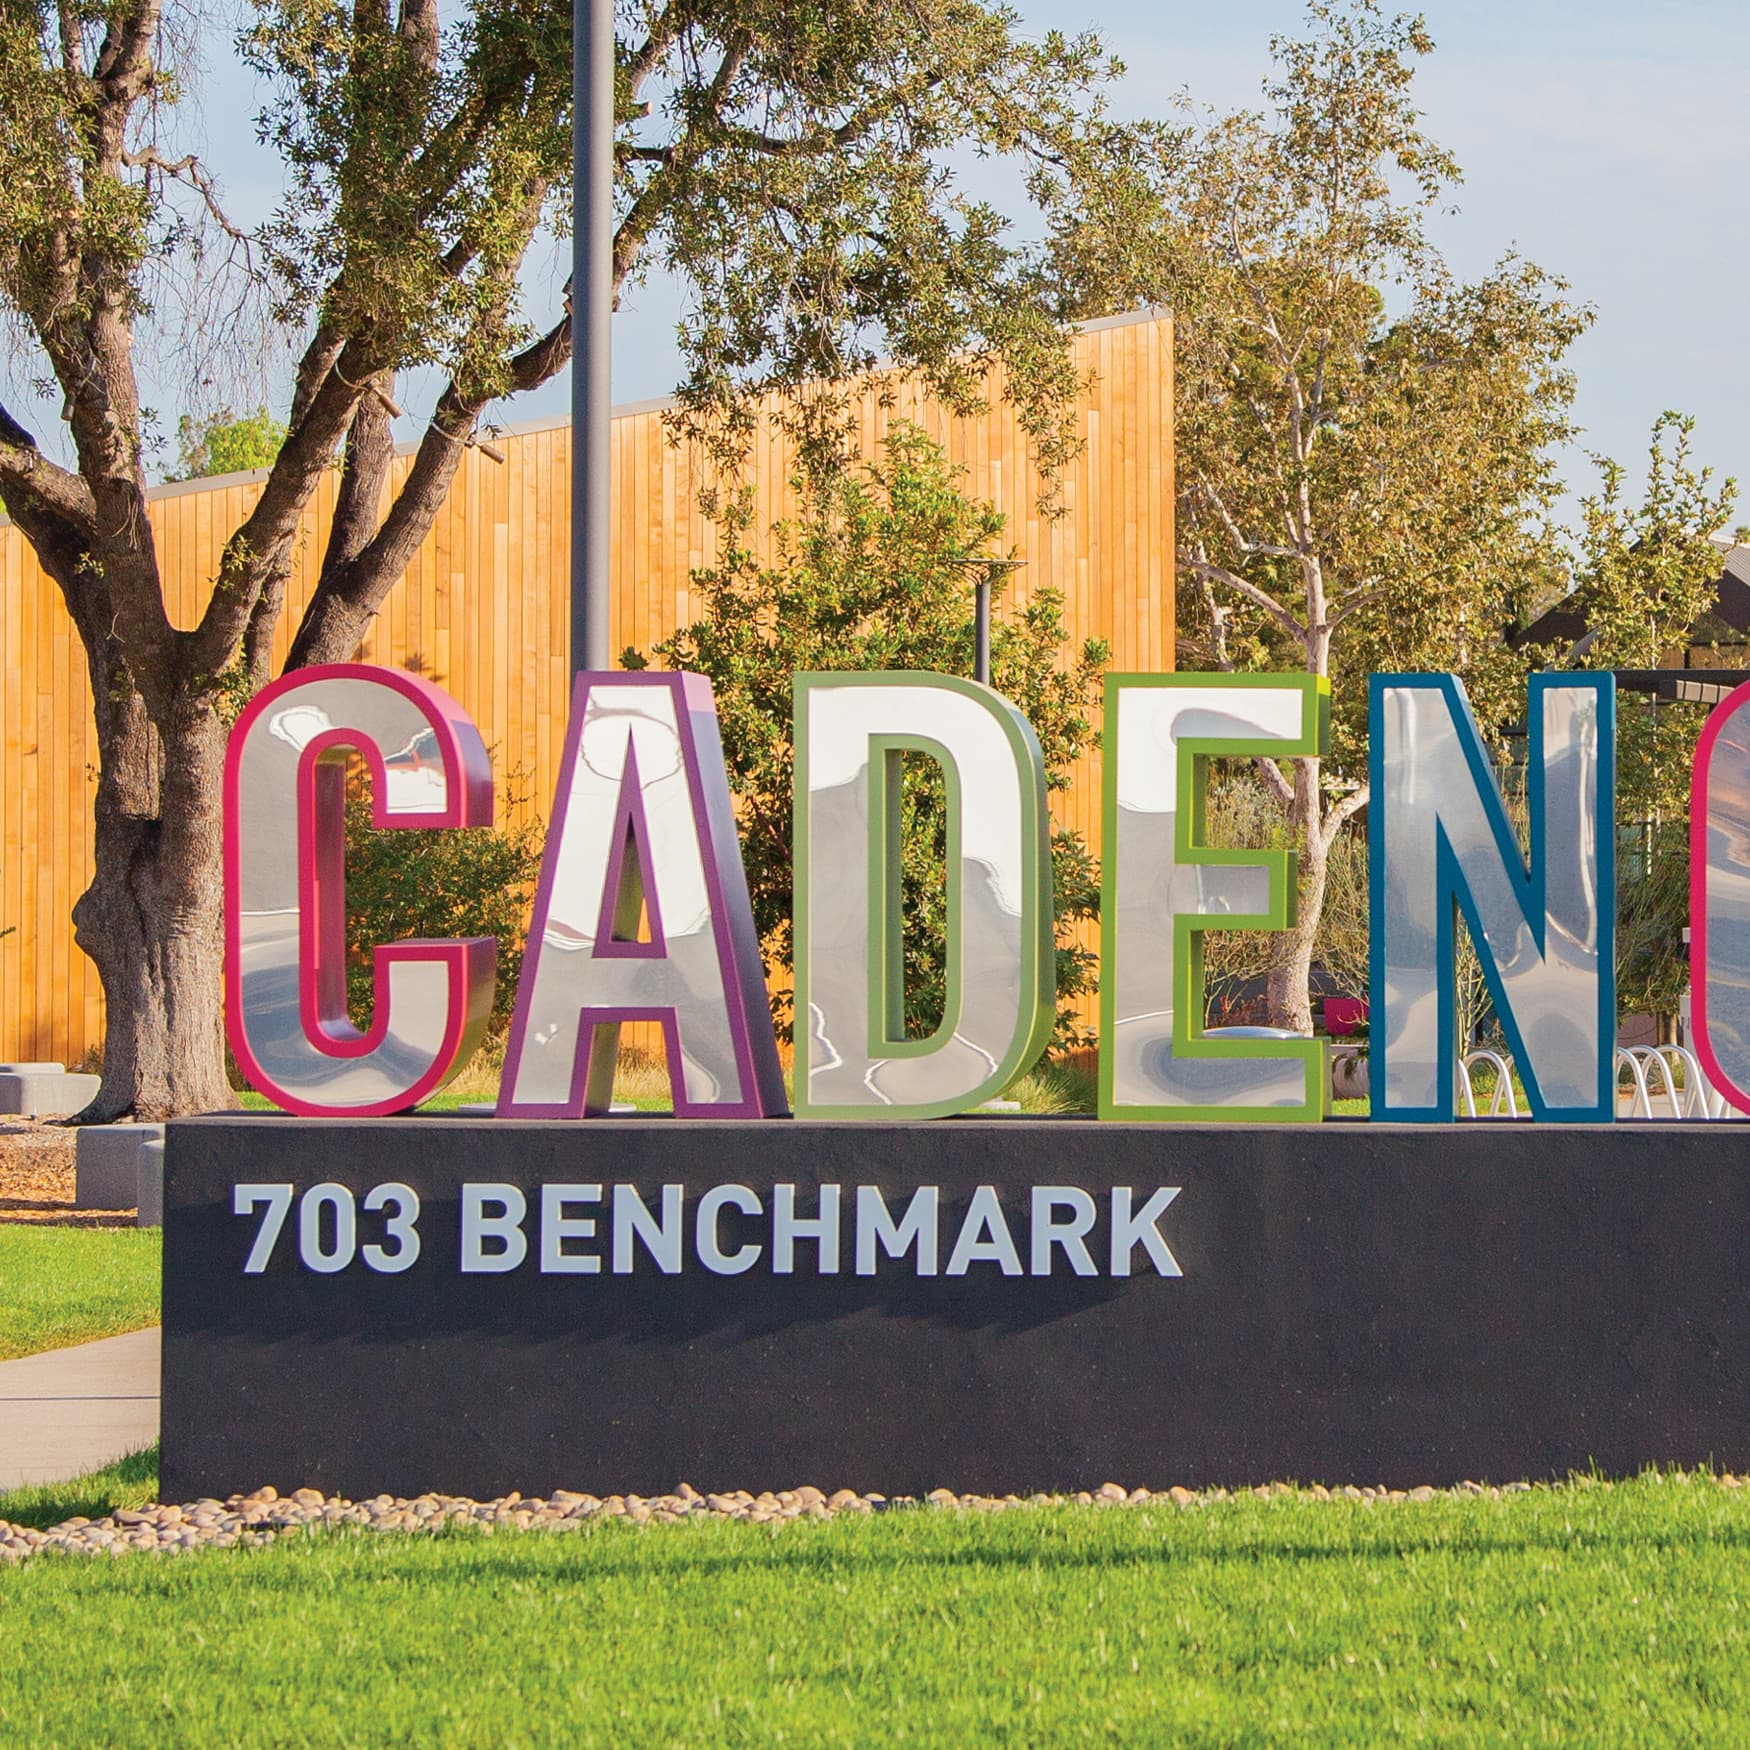 An image of a horizontal monument identity with playful coloring at Cadence Park.